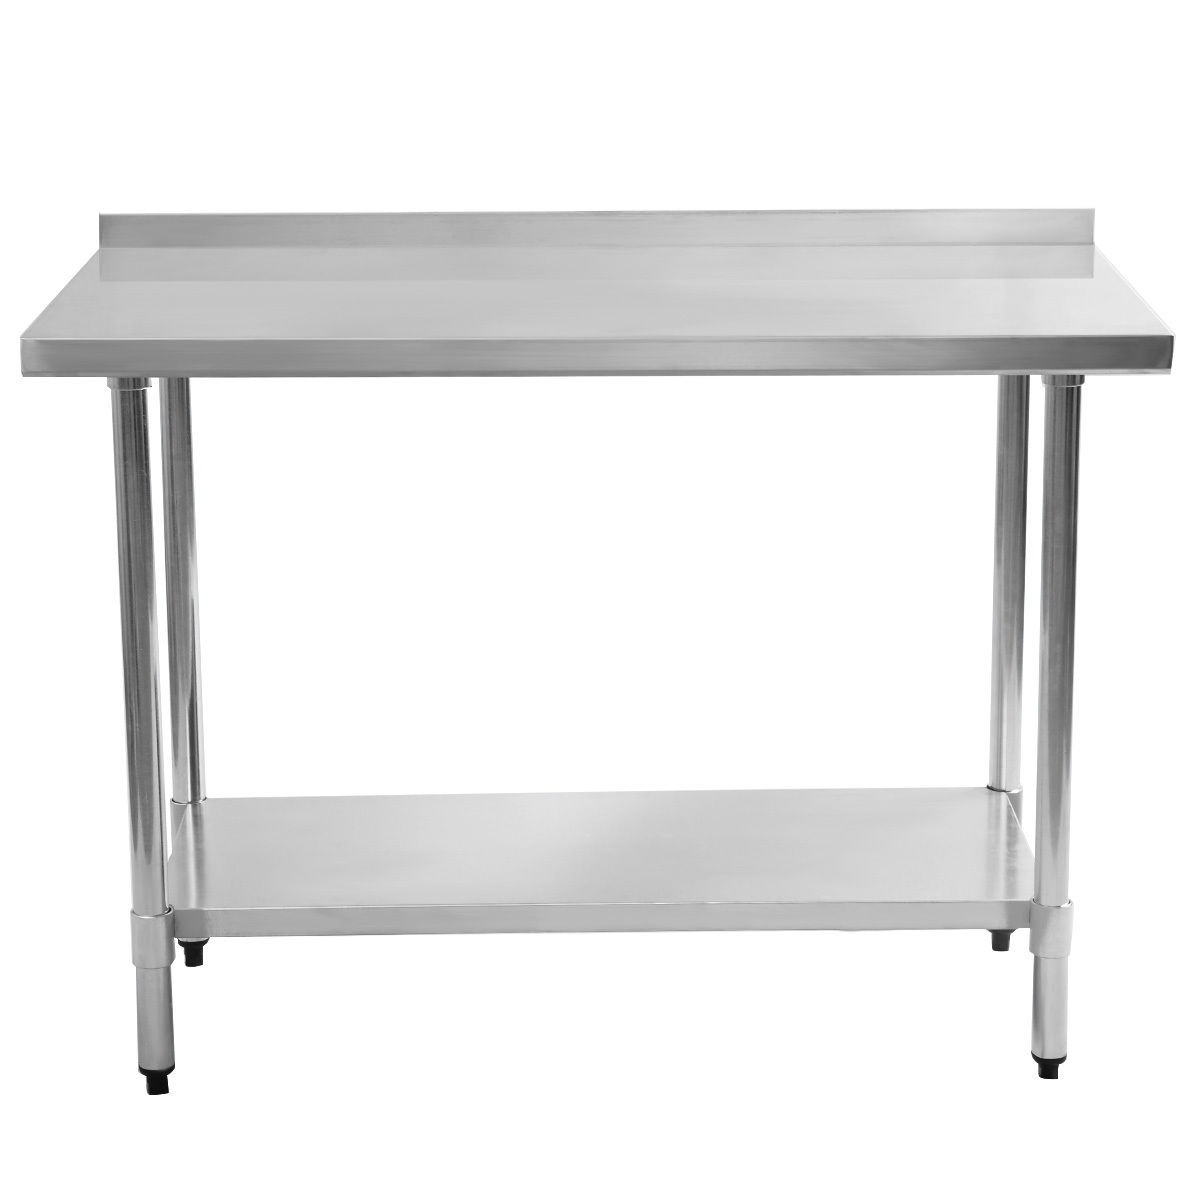 24 x 48 stainless steel work prep table with backsplash